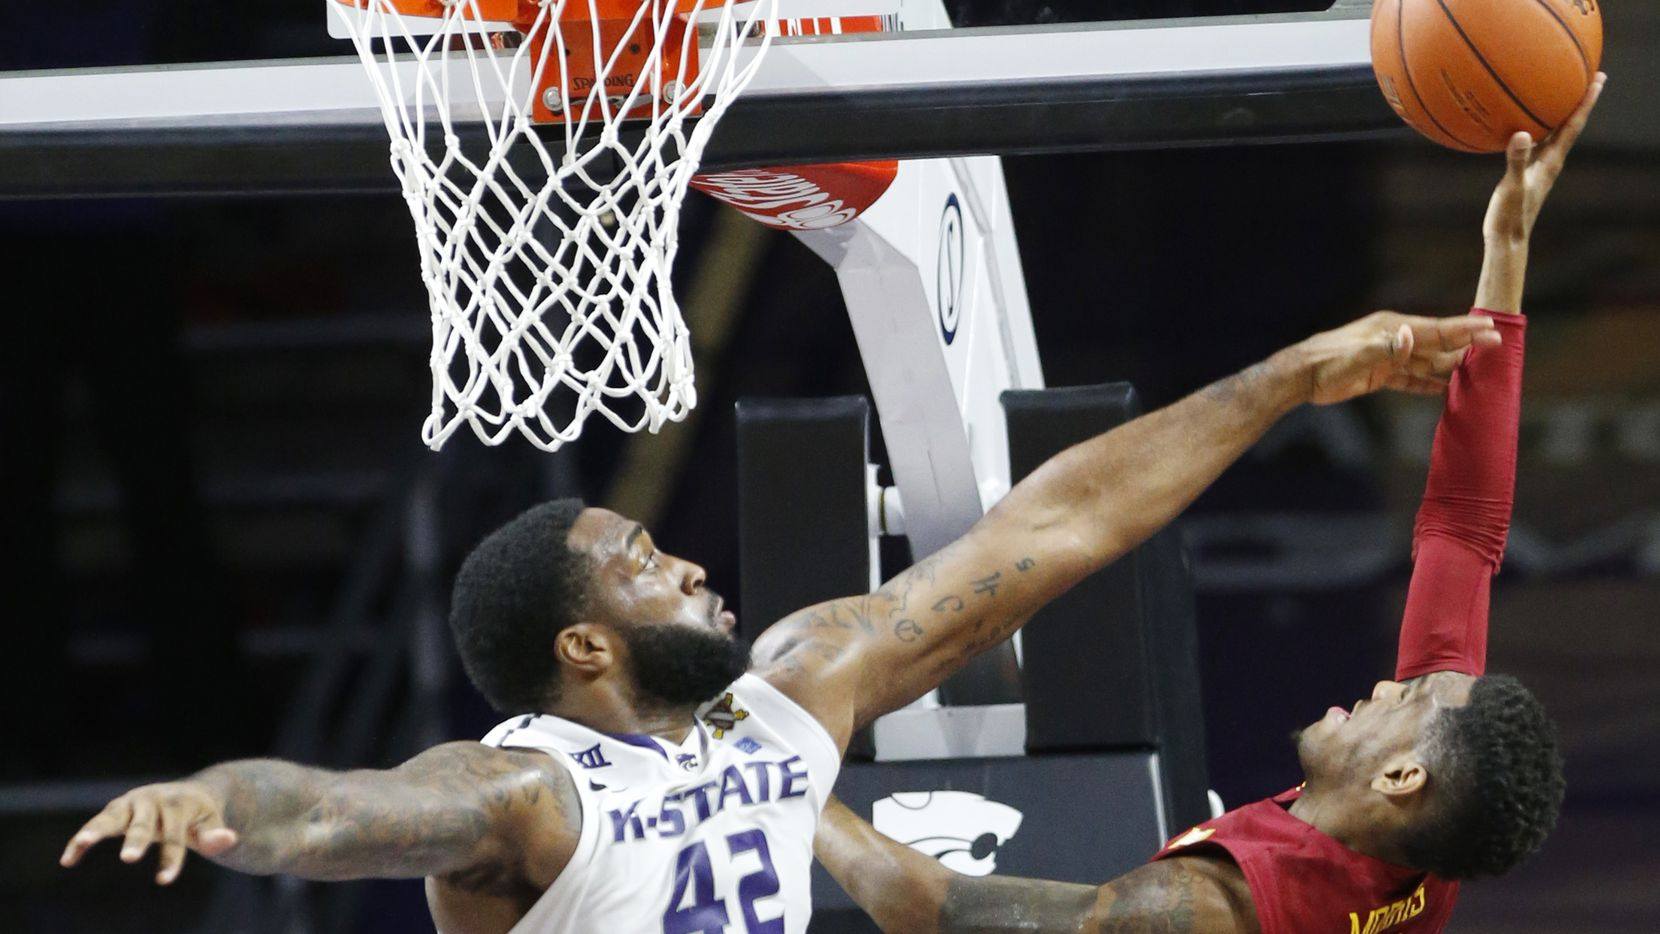 Kansas State forward Thomas Gipson (42) attempts to knock down a shot by Iowa State guard Monte Morris (11) fouling him in the process in their NCAA college basketball game in Manhattan, Kan. on Saturday, Feb. 28, 2015 as the Wildcats took on #12 Iowa State. Morris' shot tied the game with seconds left to go. (AP Photo/The Wichita Eagle, Bo Rader)